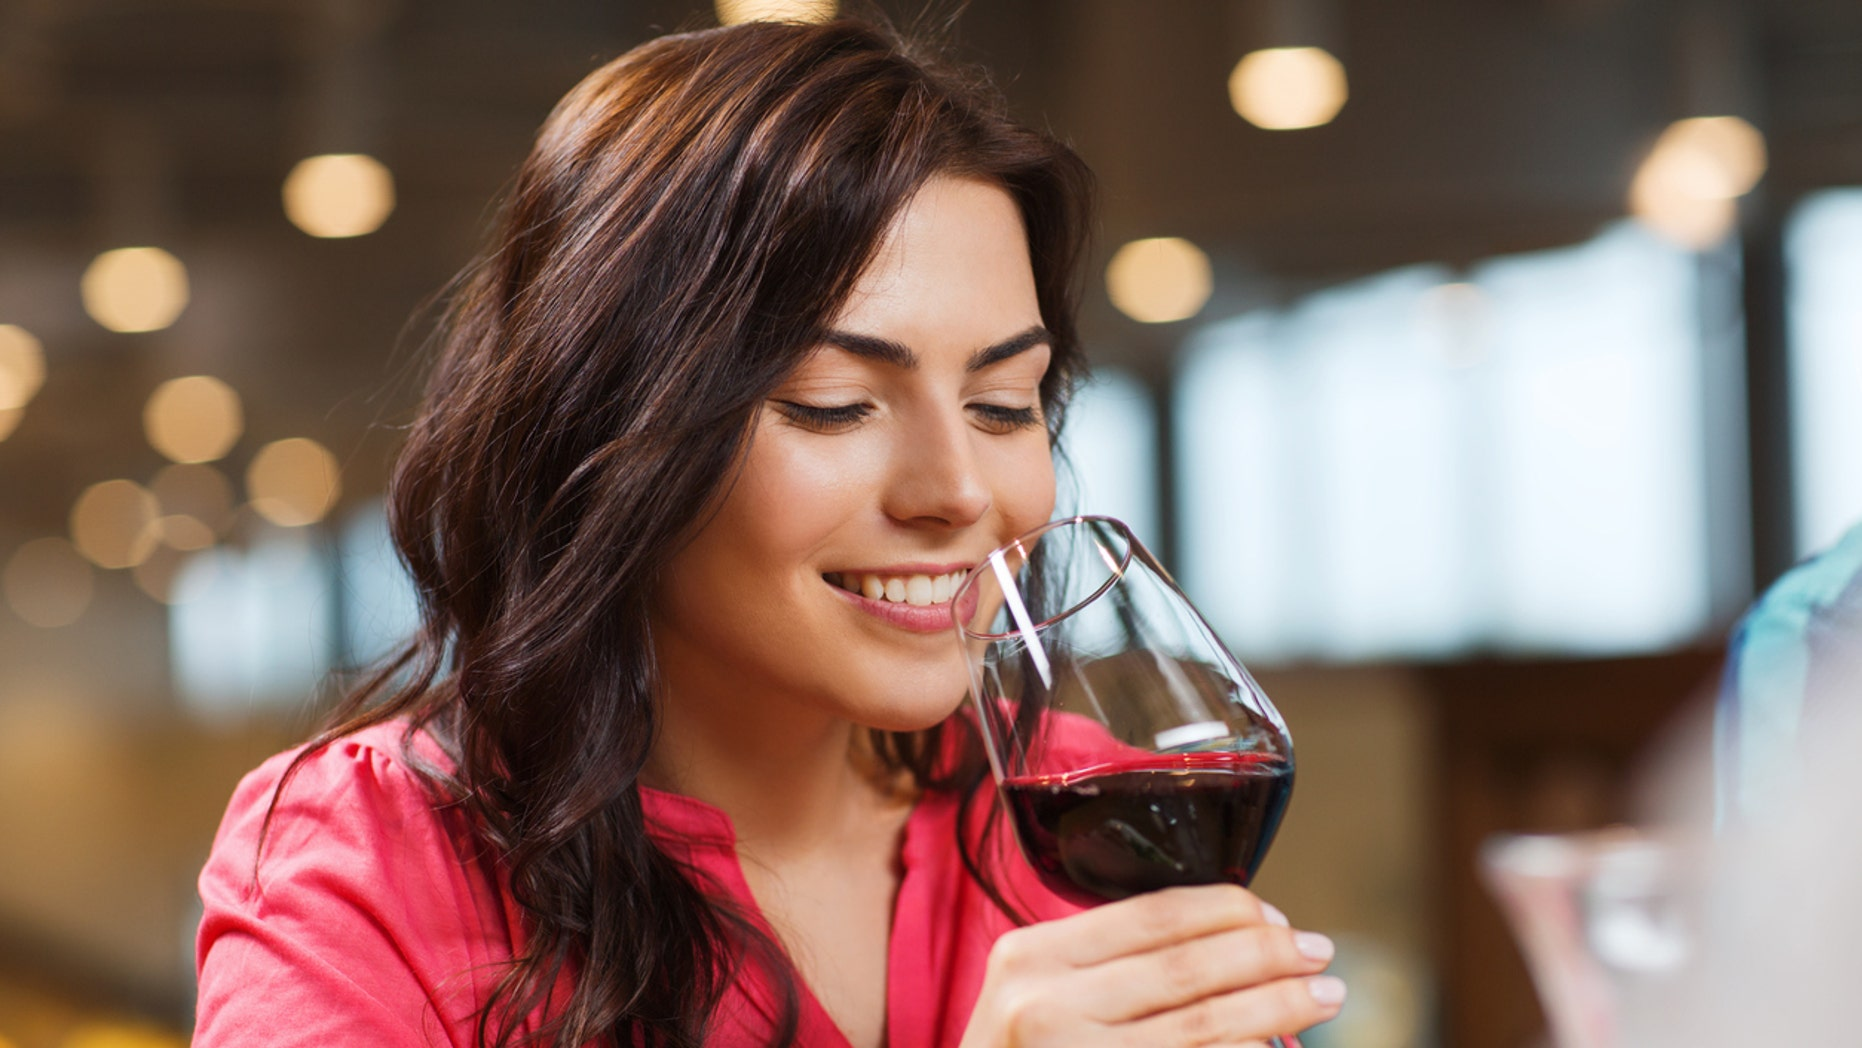 leisure, drinks, degustation, people and holidays concept - smiling woman drinking red wine at restaurant